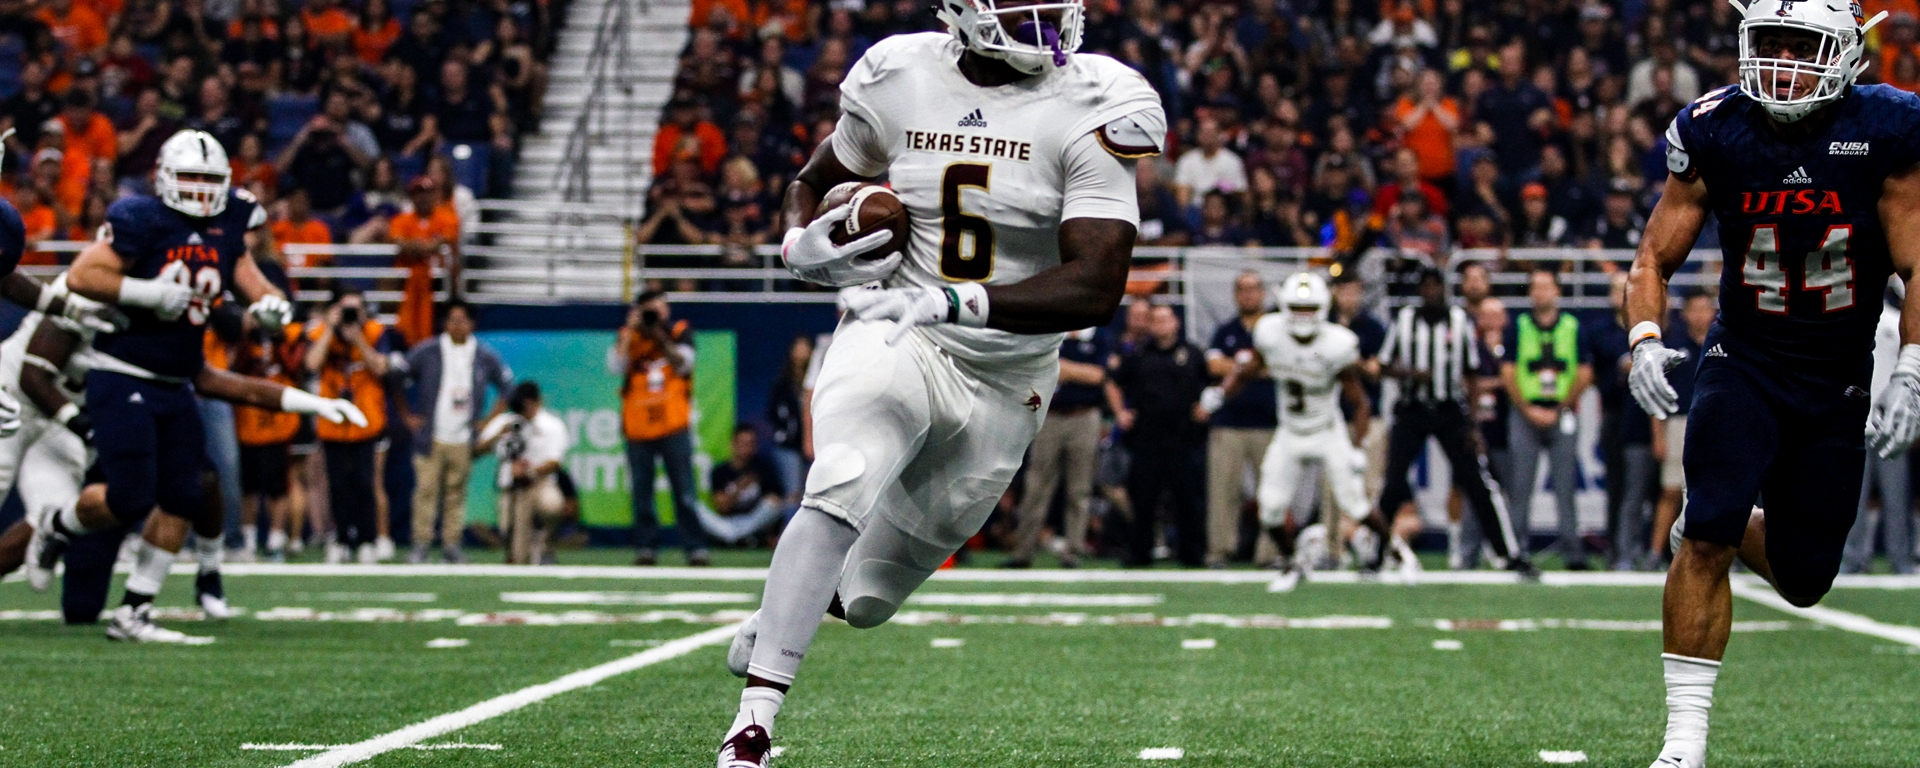 Number six, Tight End Keenen Brown, in all white and chased by two blue-uniformed UTSA defenders, powers down the field after catching a pass against UTSA earlier this season. His dynamic balance of power in running style and athleticism in route running has added explosiveness to the Texas State offense.